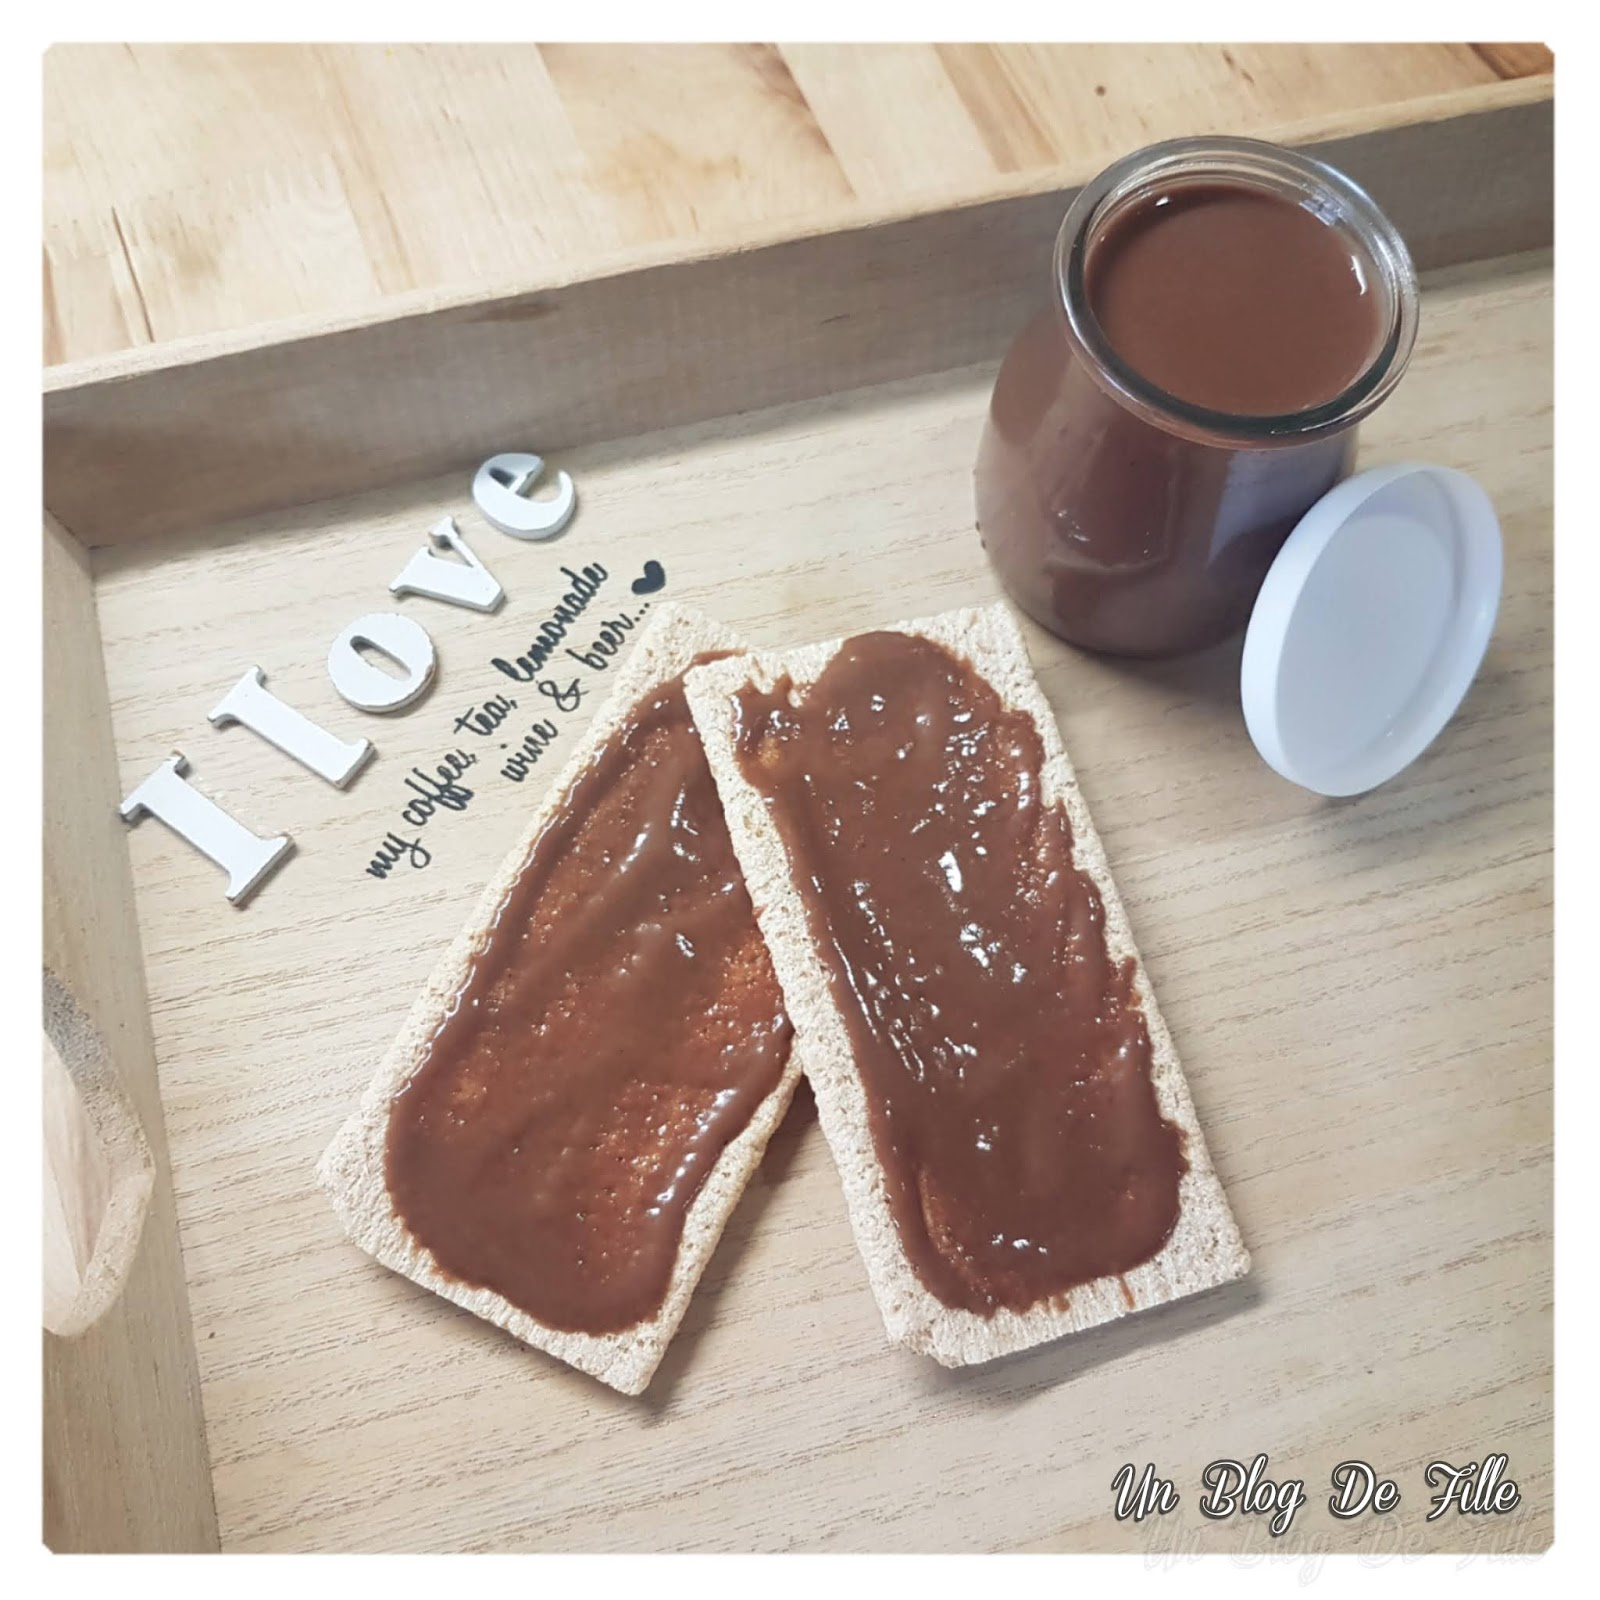 http://www.unblogdefille.fr/2020/05/recette-pate-tartiner-chocolat.html